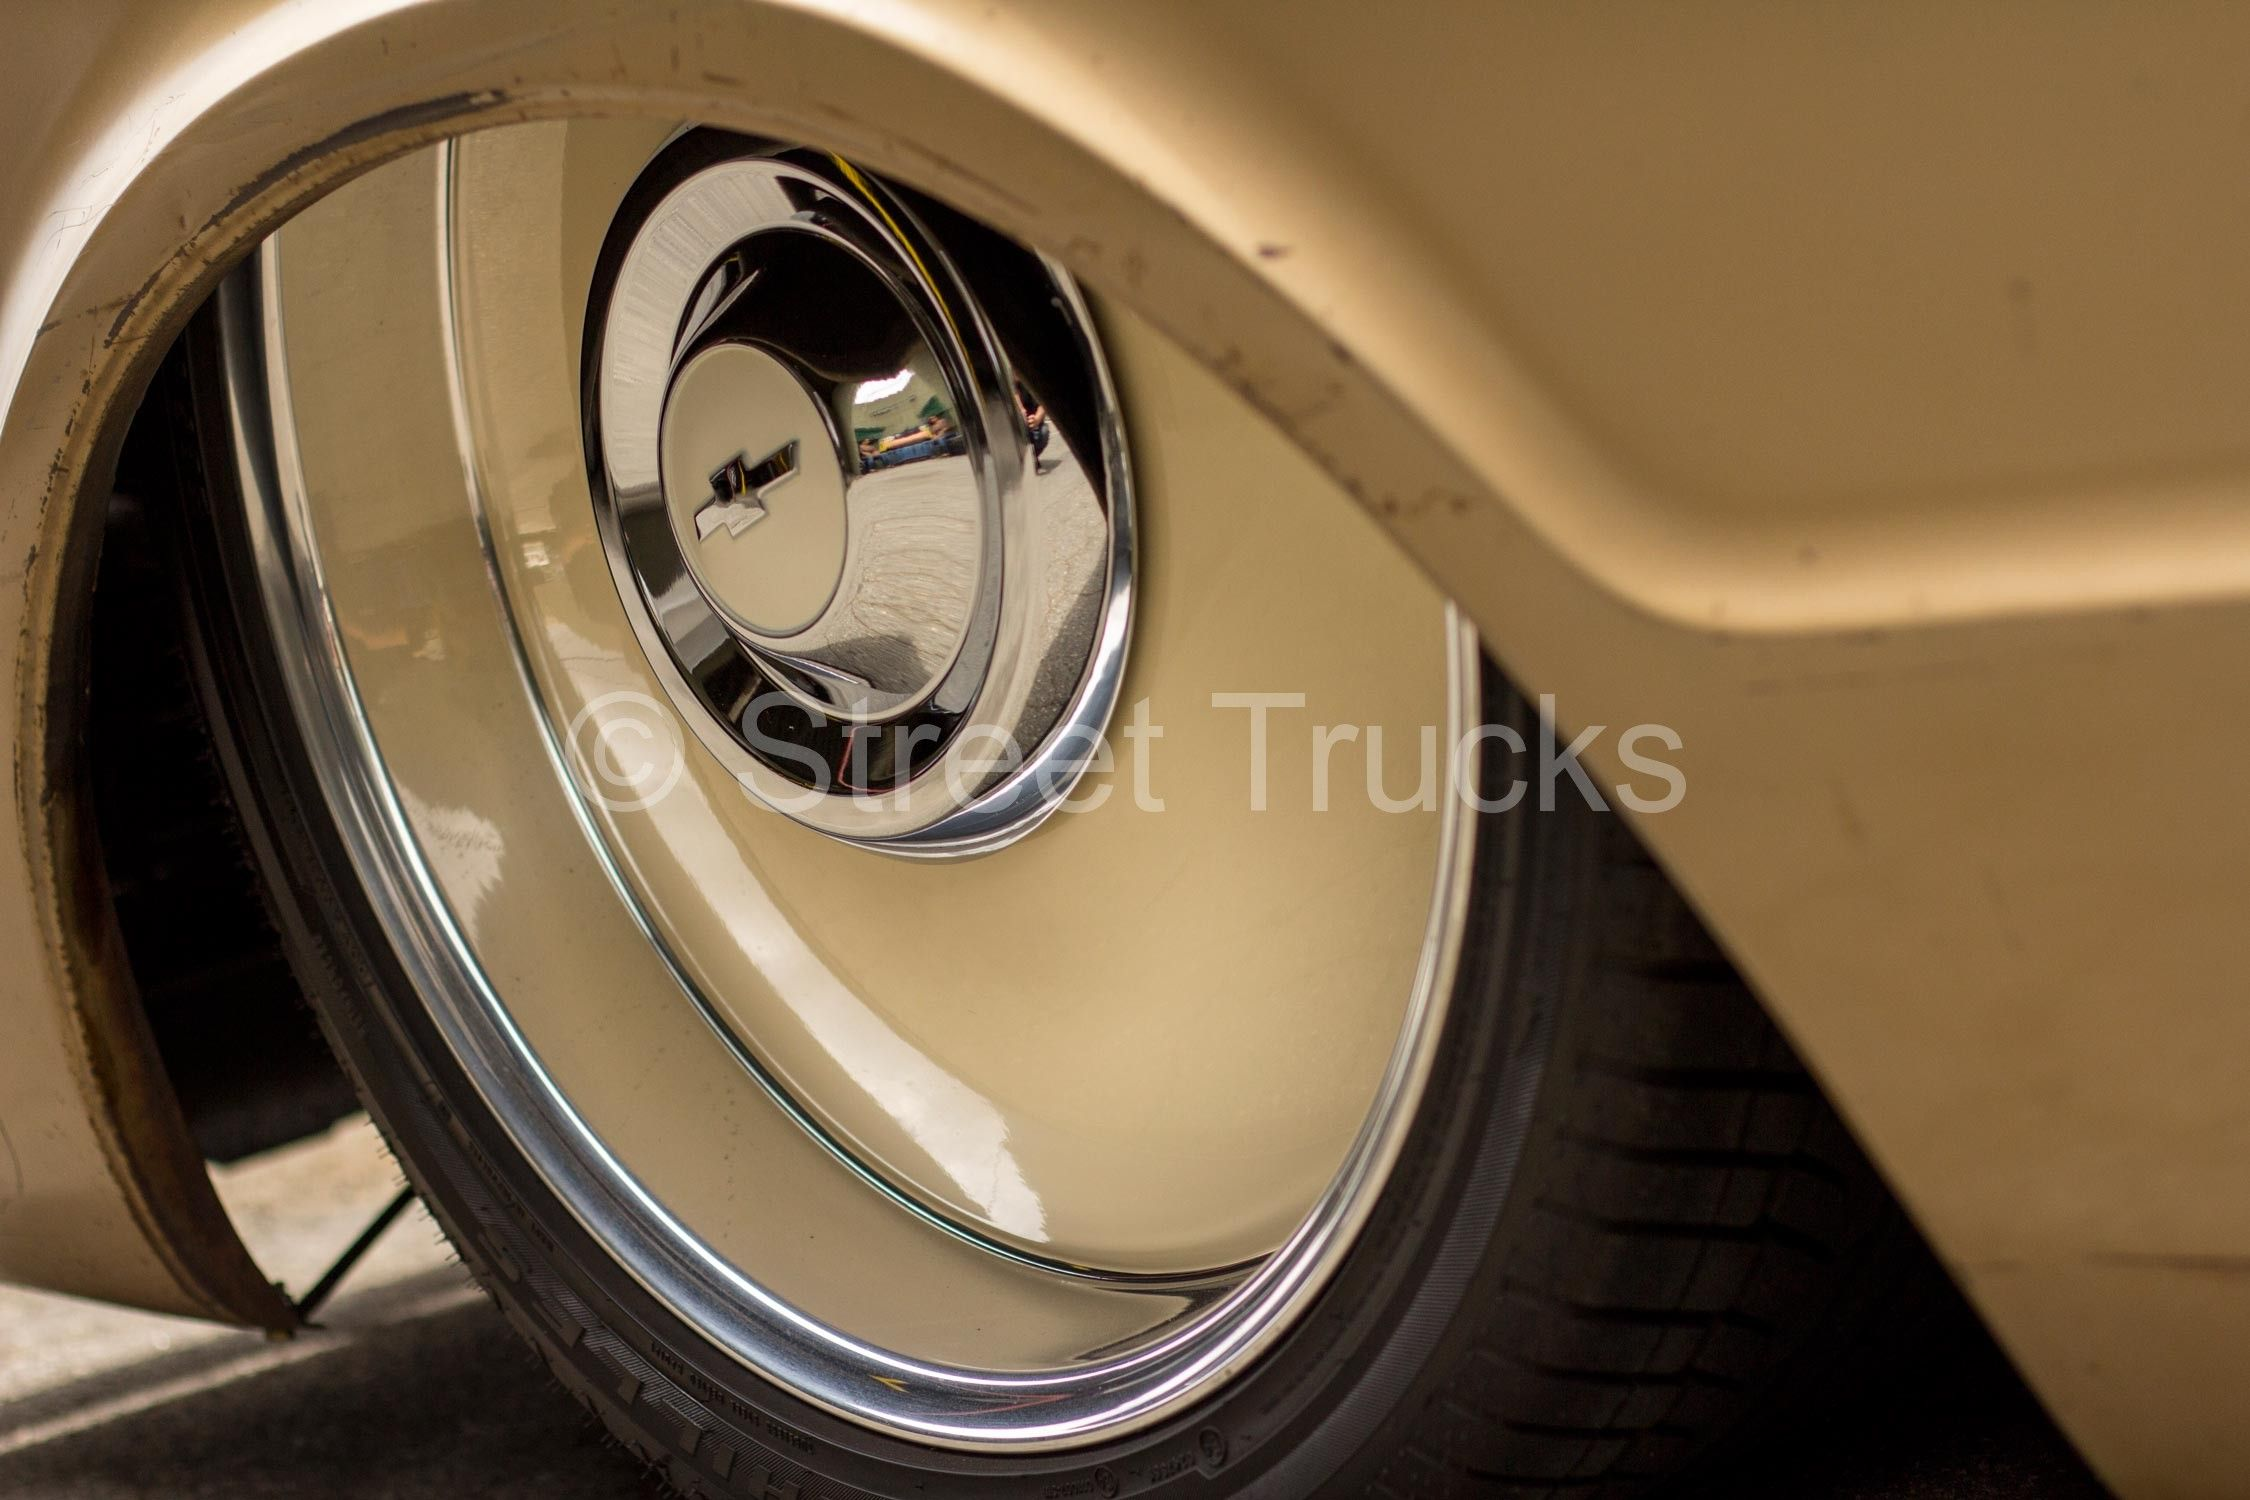 Chevy Truck Center Caps Google Search 57 Chevy Trucks C10 Chevy Truck Chevy Trucks